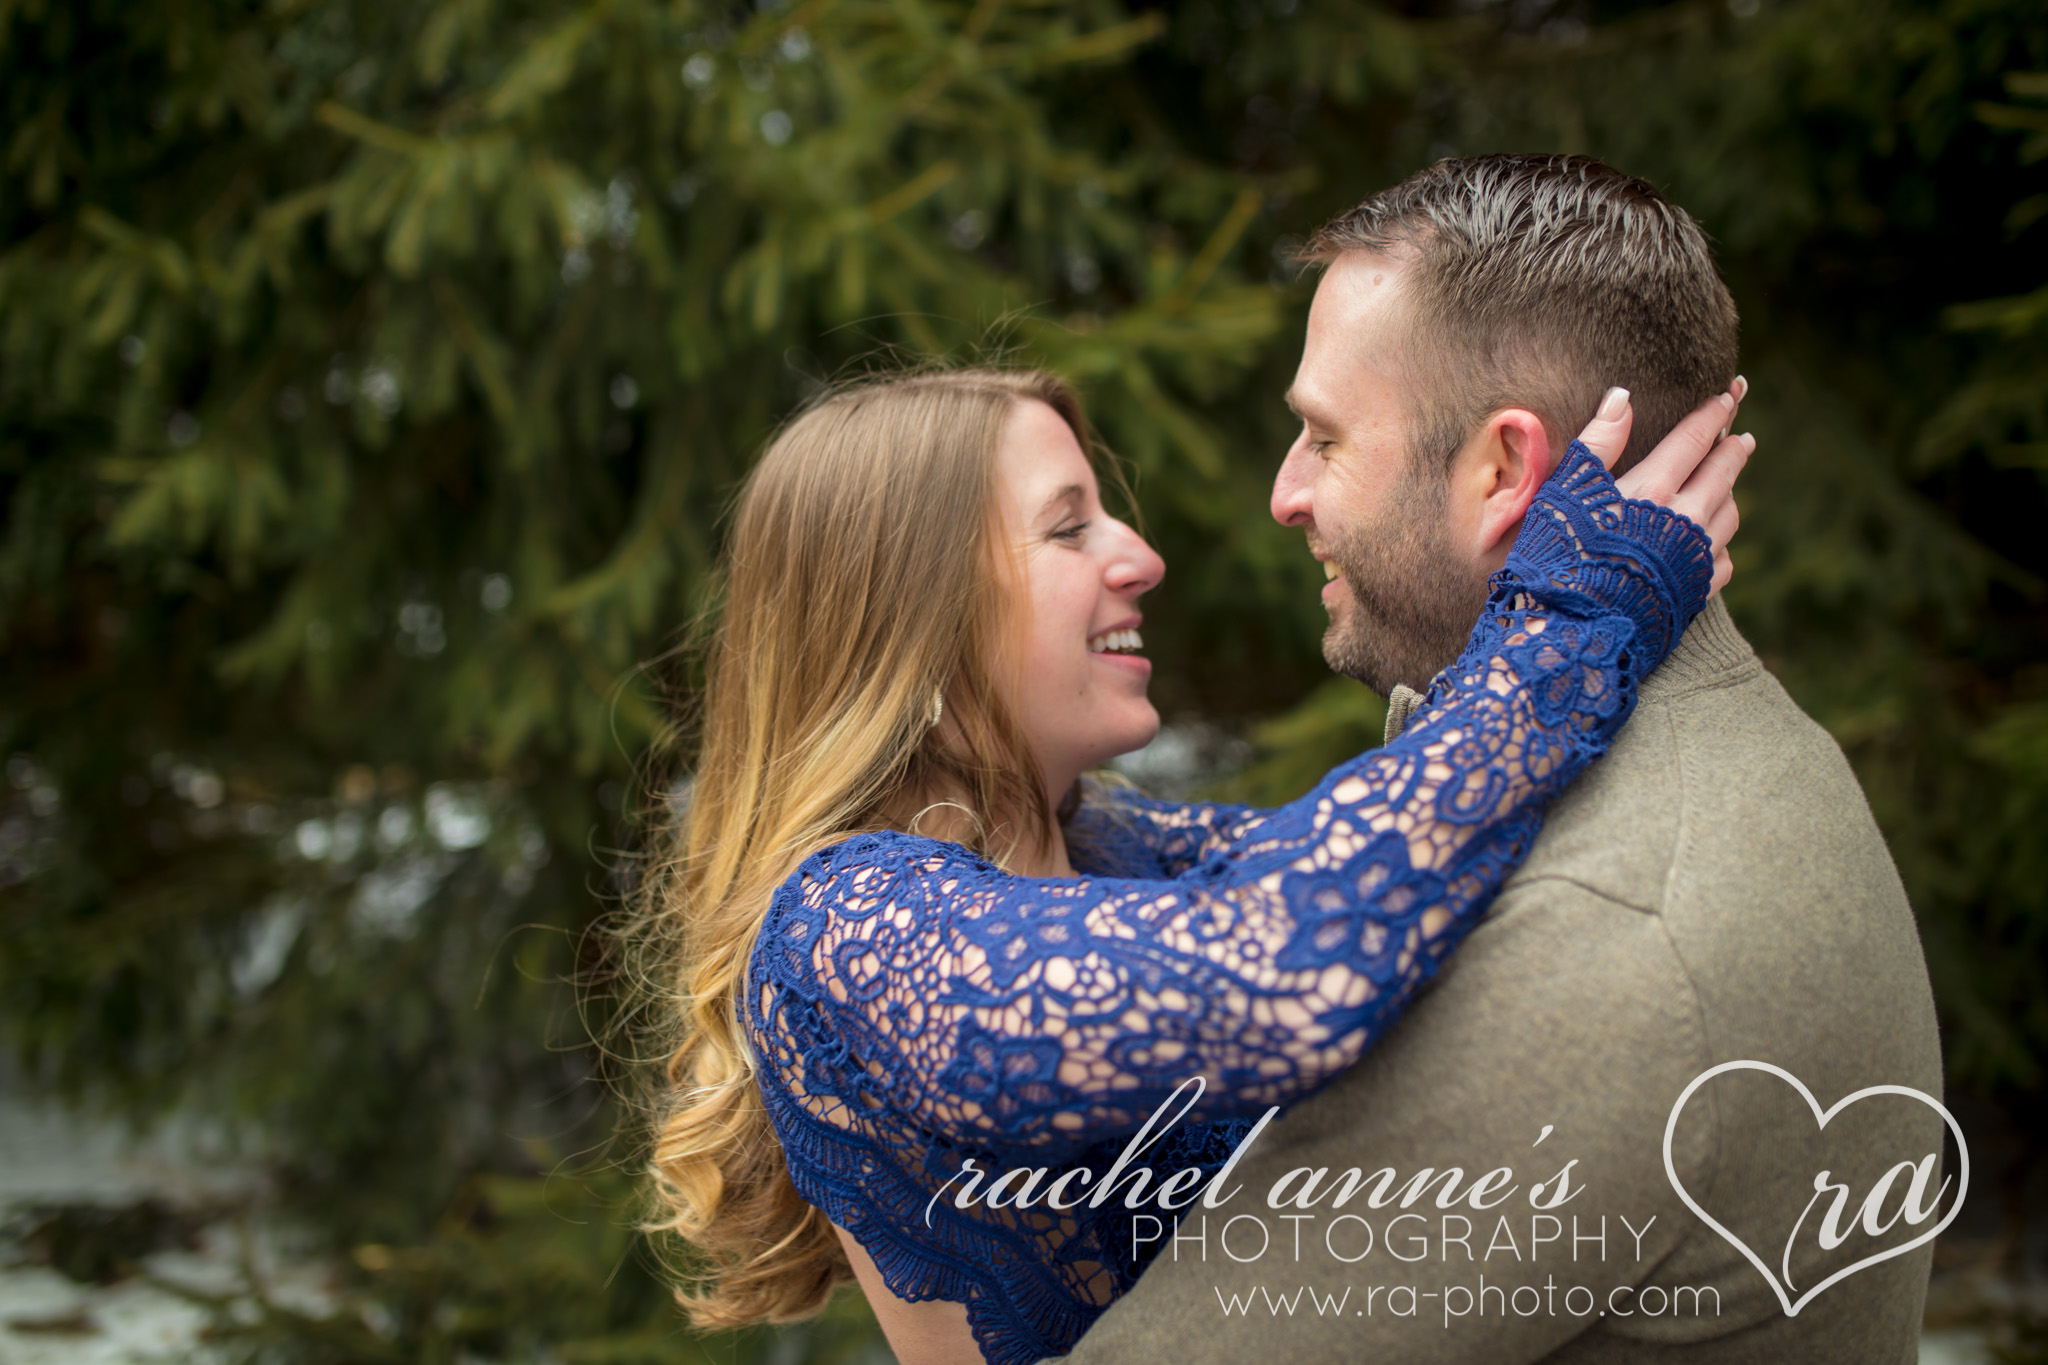 068-JKM-DUBOIS-PA-ENGAGEMENT-PHOTOGRAPHY.jpg